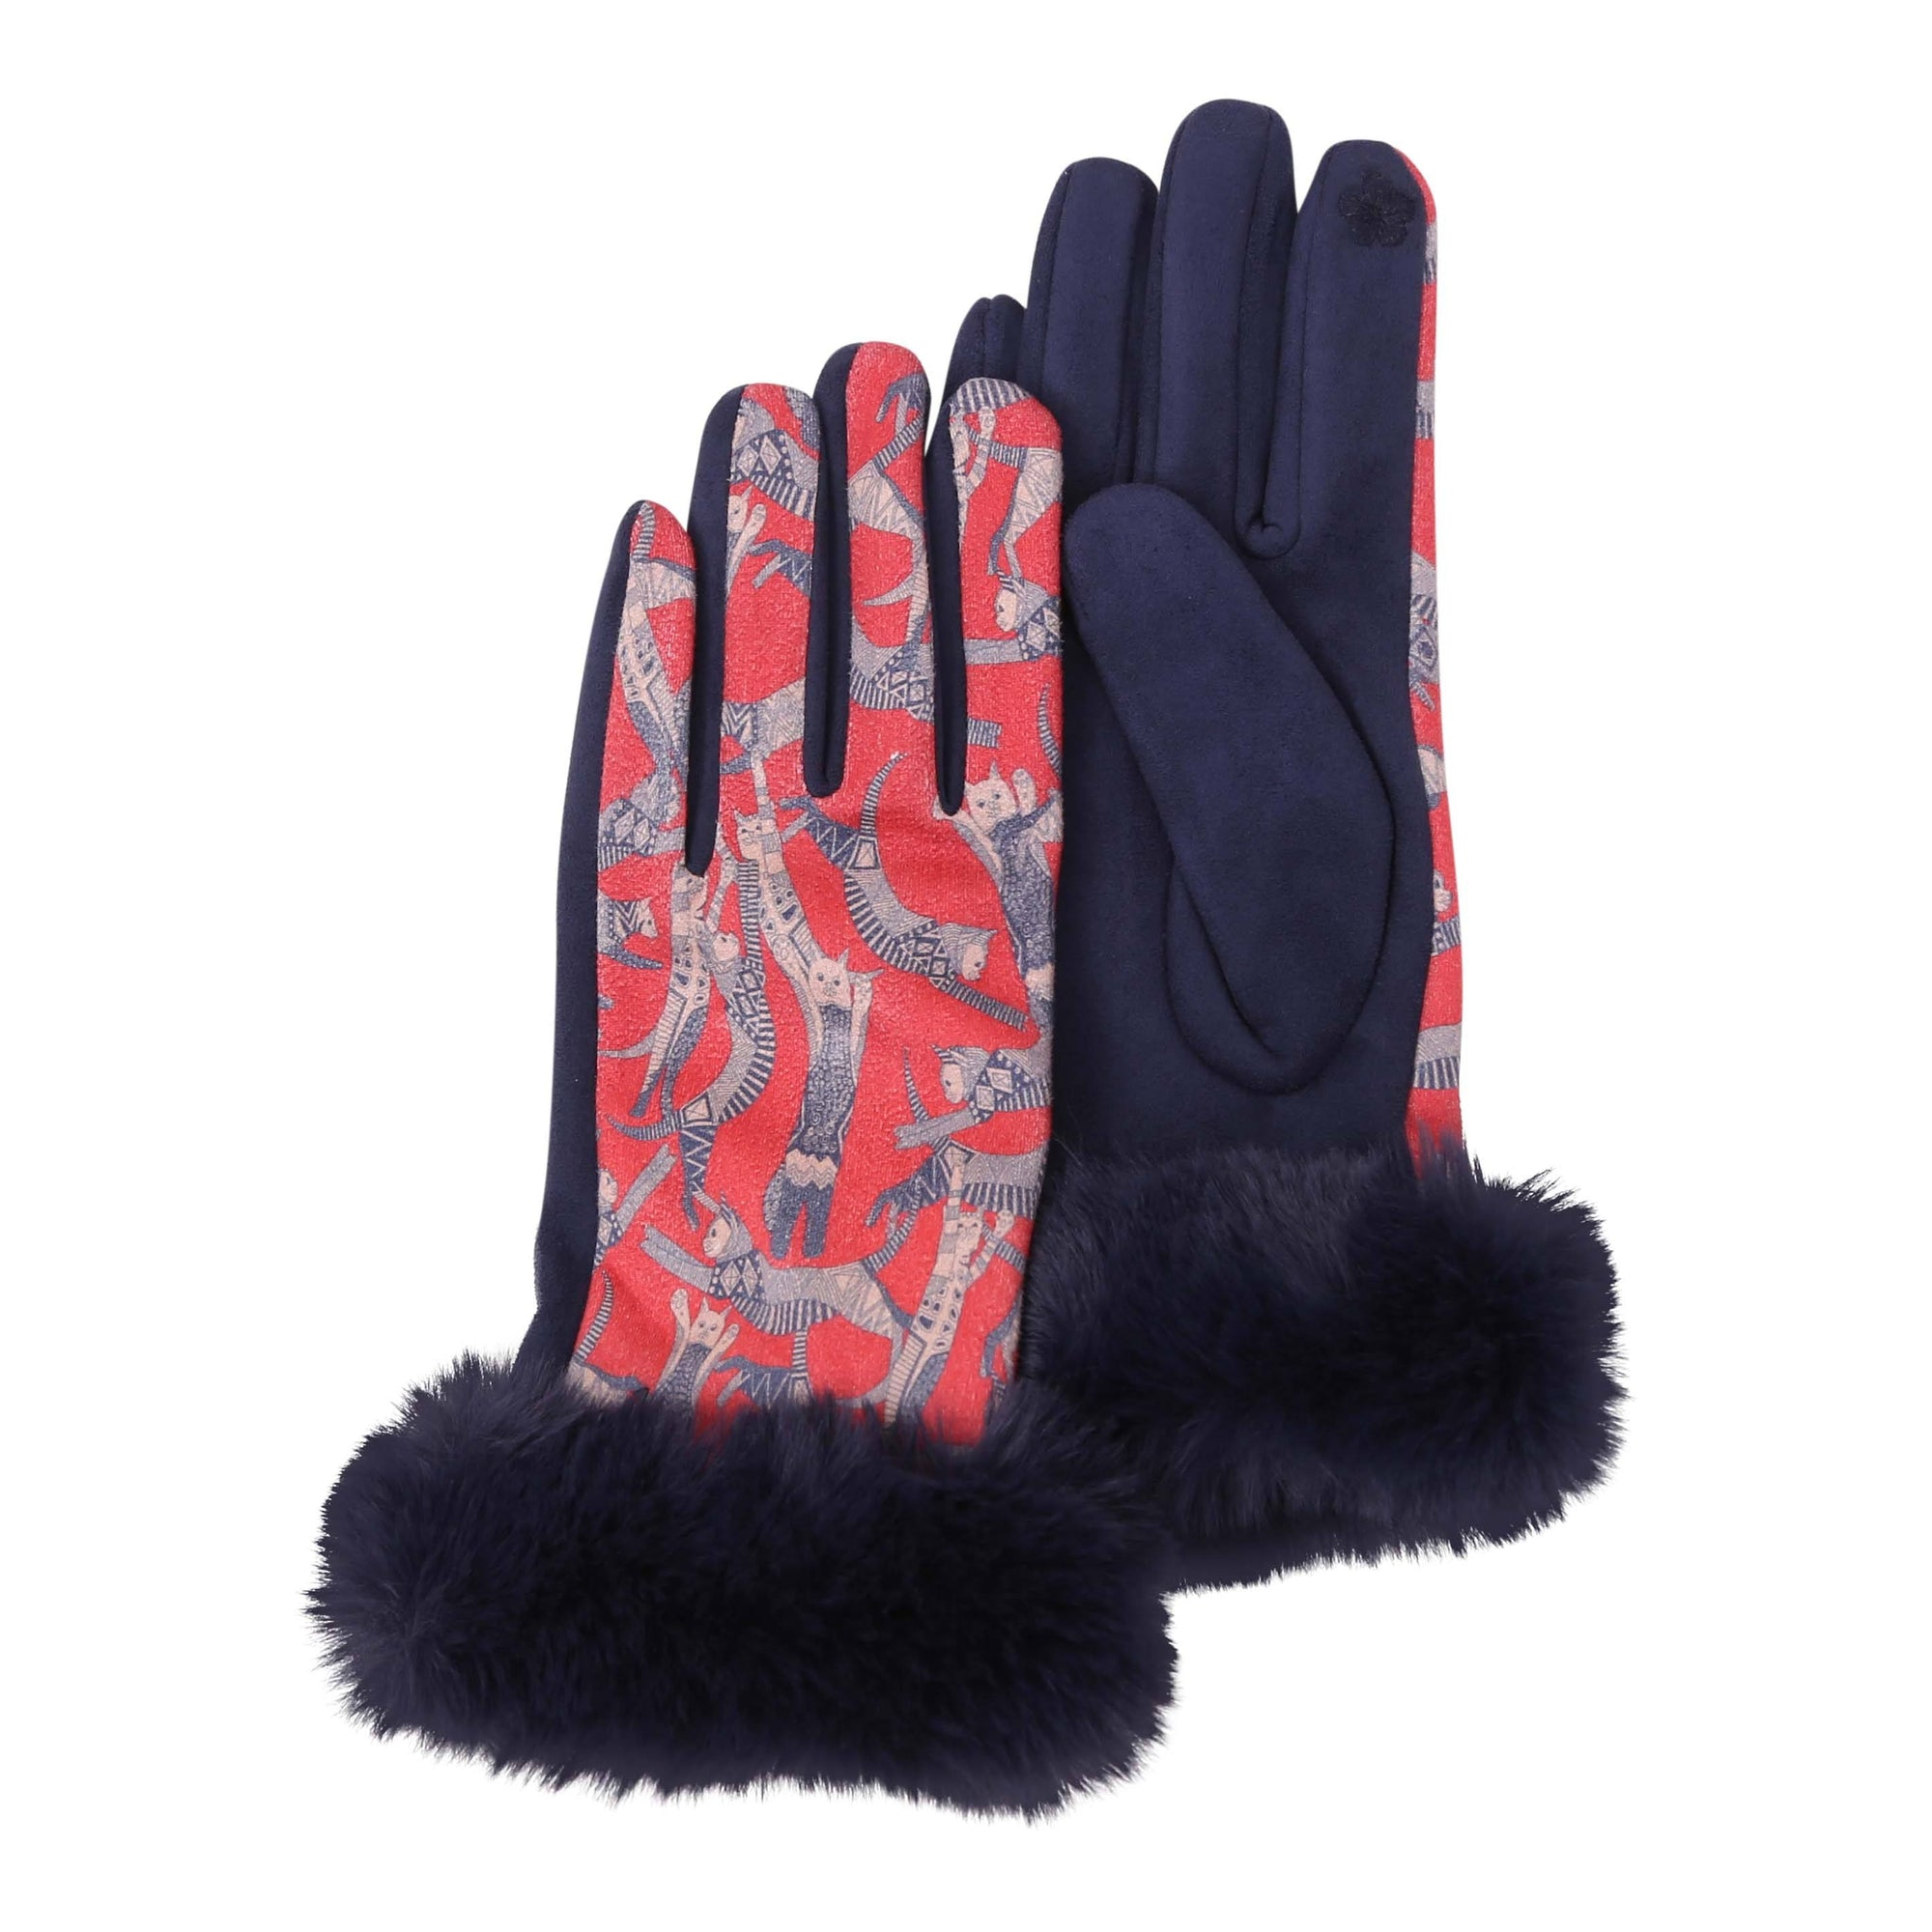 Pair of Navy and Cool Cats print texting gloves with black fake fur cuffs.